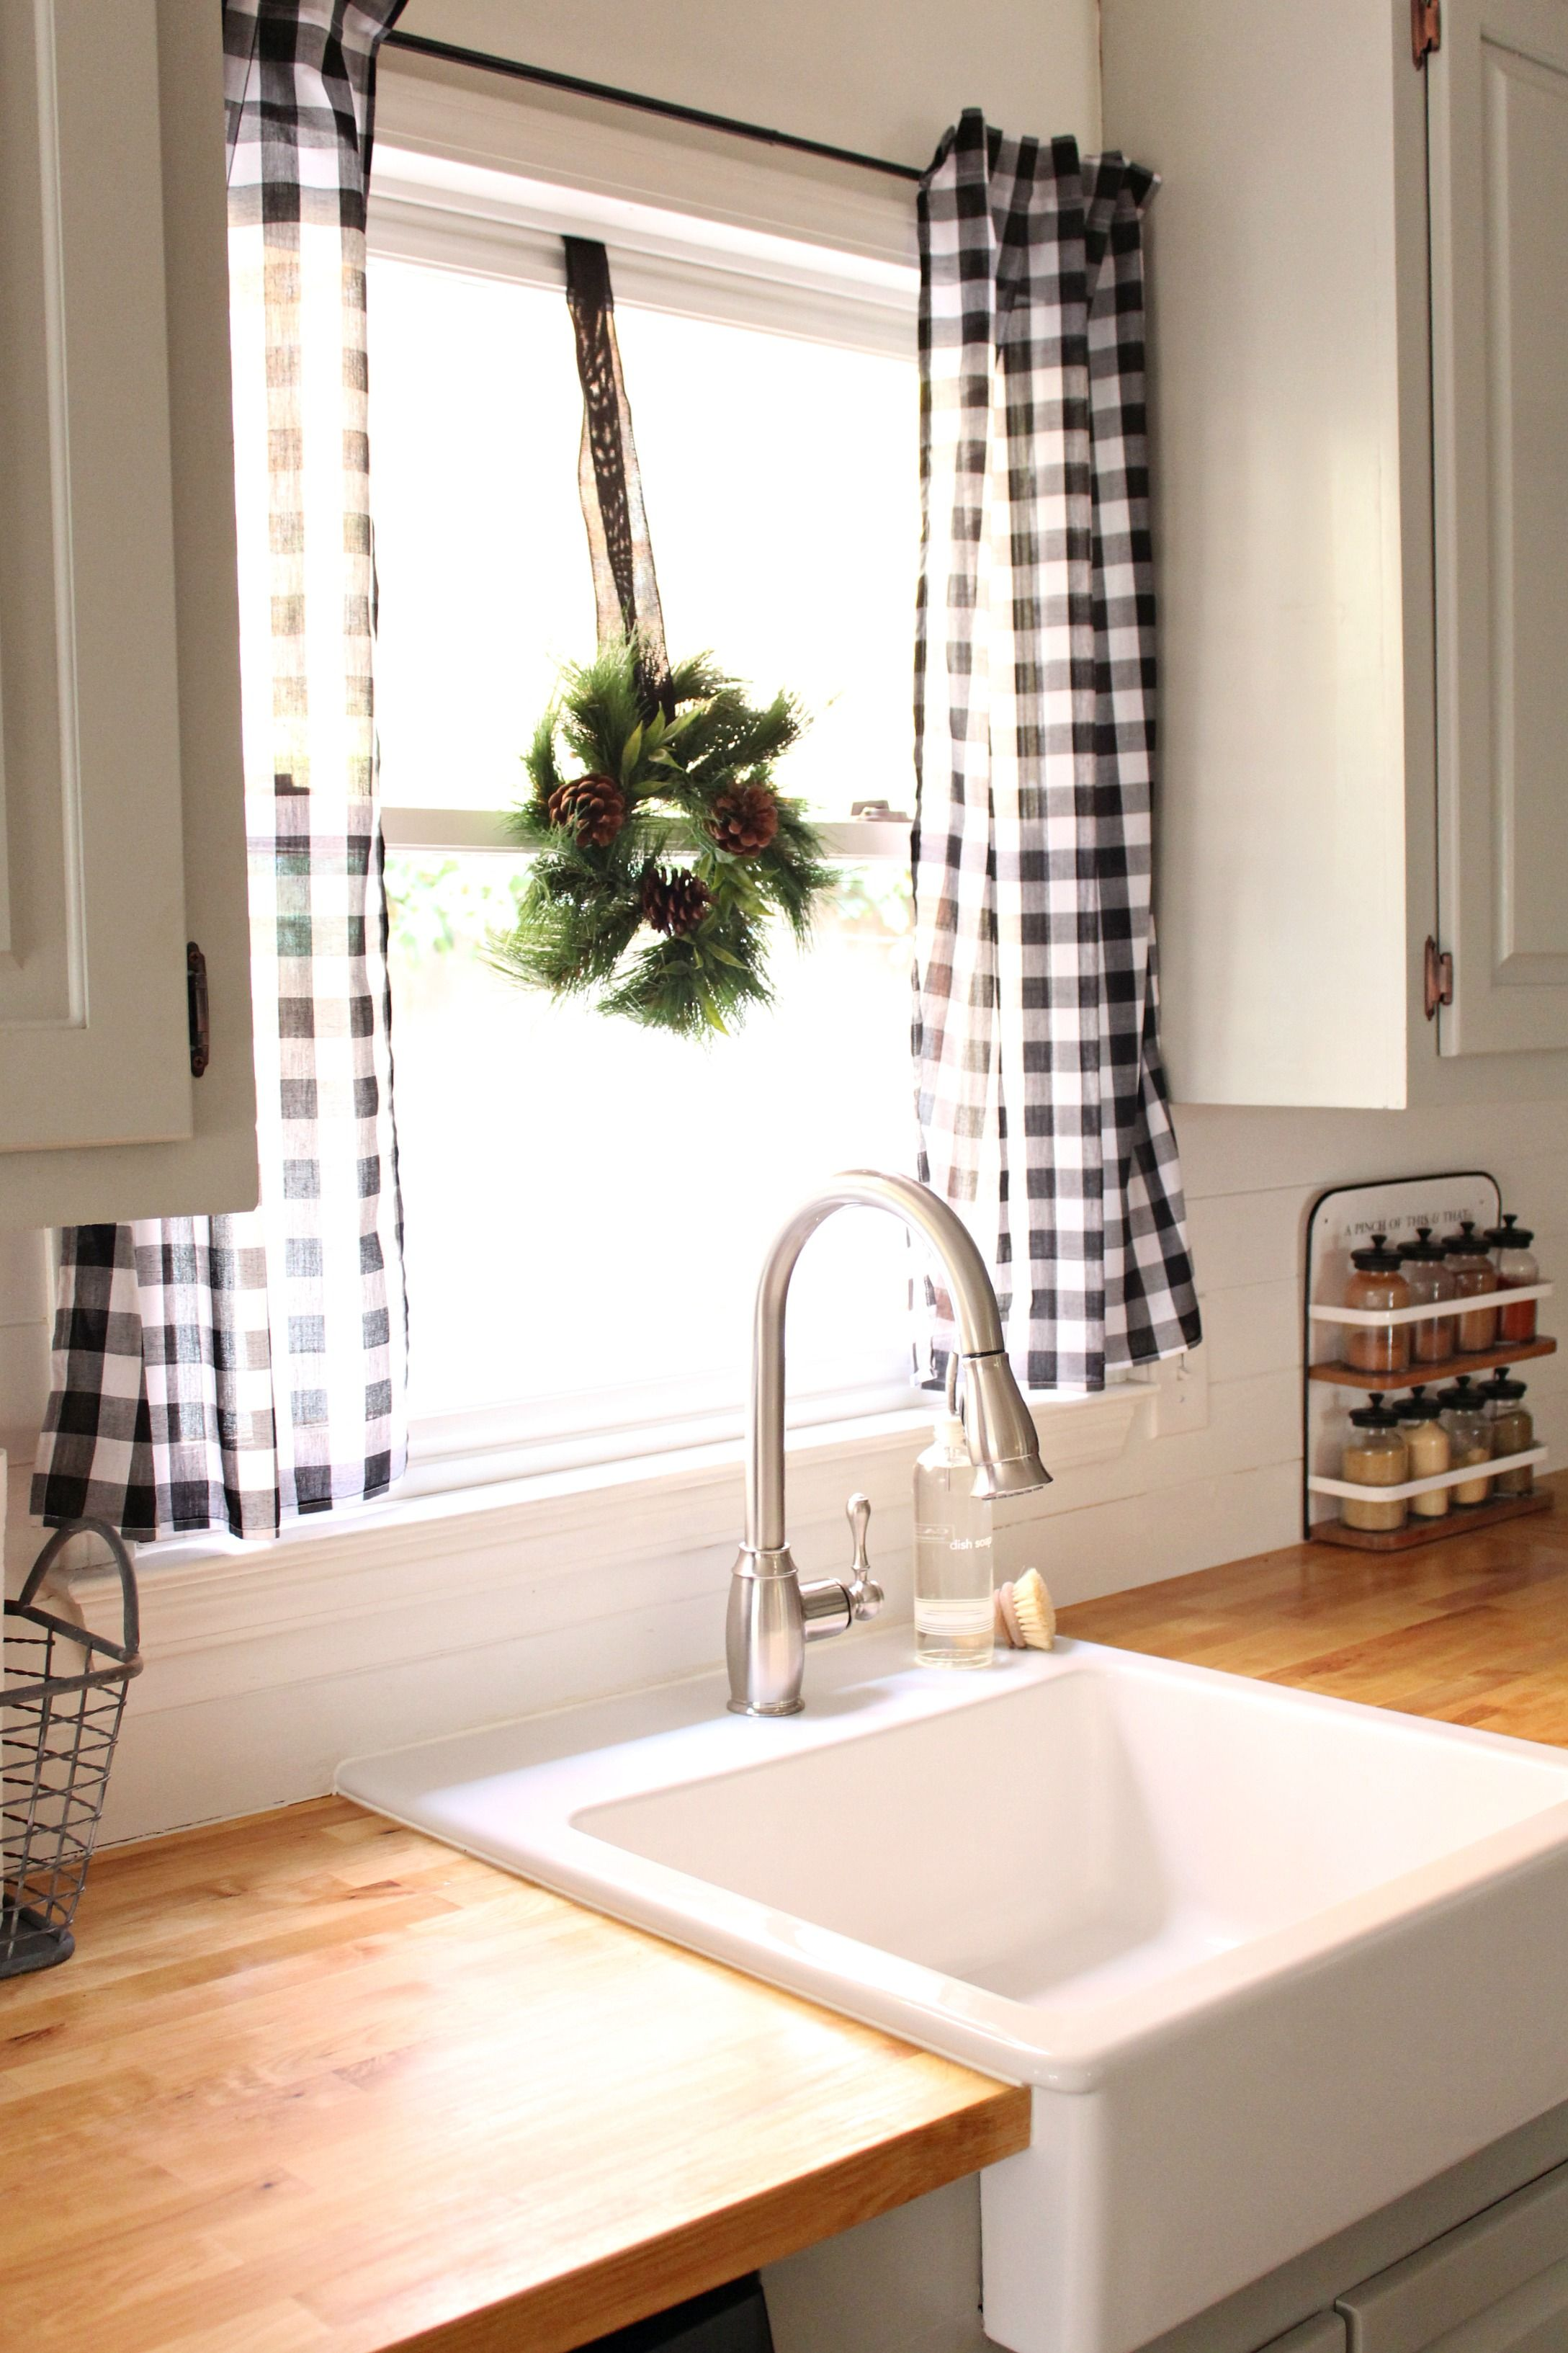 Pottery Barn Kitchen Curtains Drunk Wet People Kitchen Sinks Window And Window Ideas